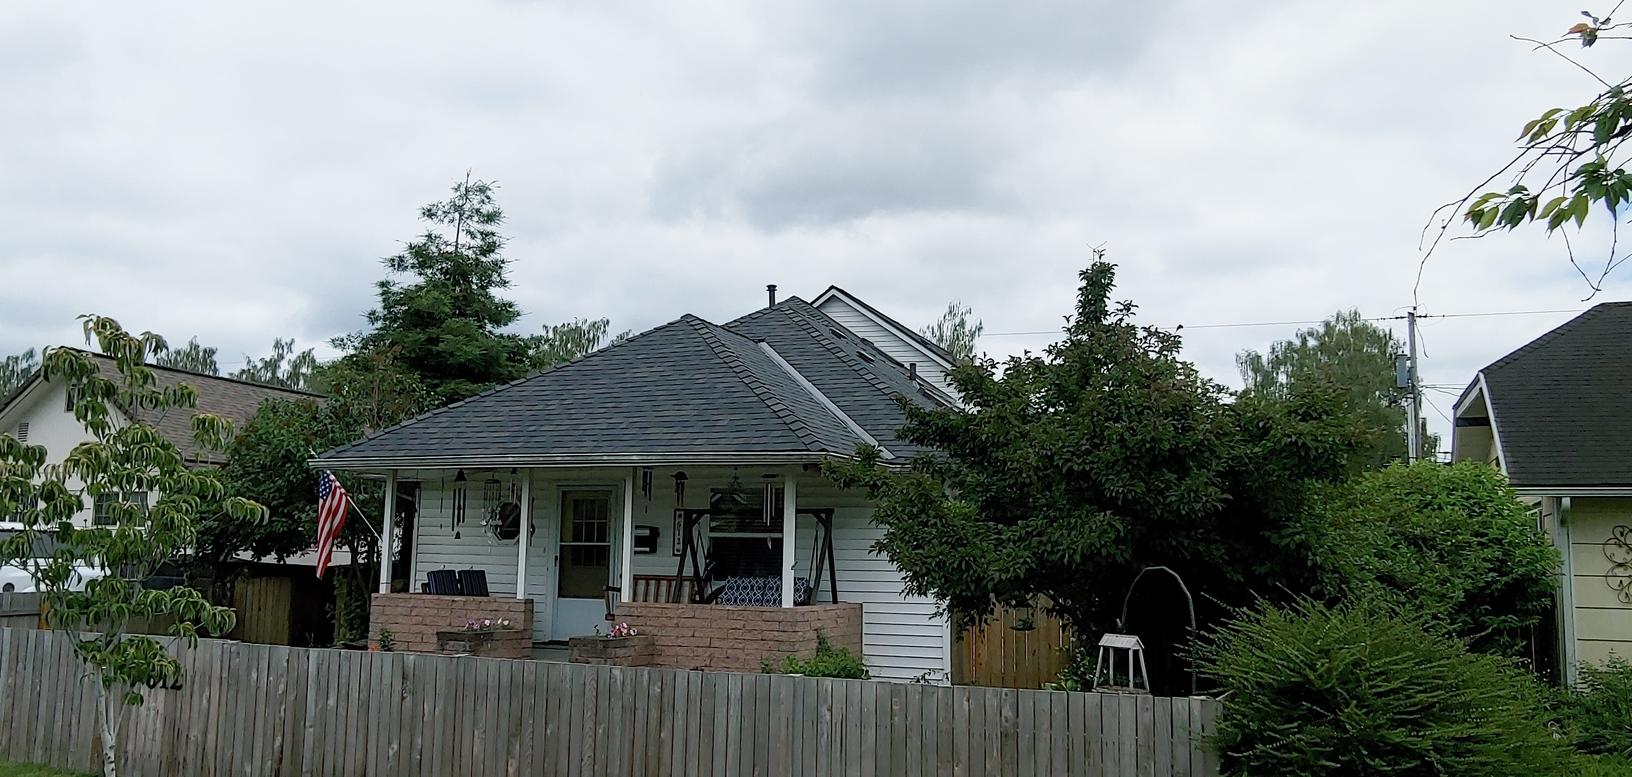 Owens Corning Roof Replacement in WA - After Photo